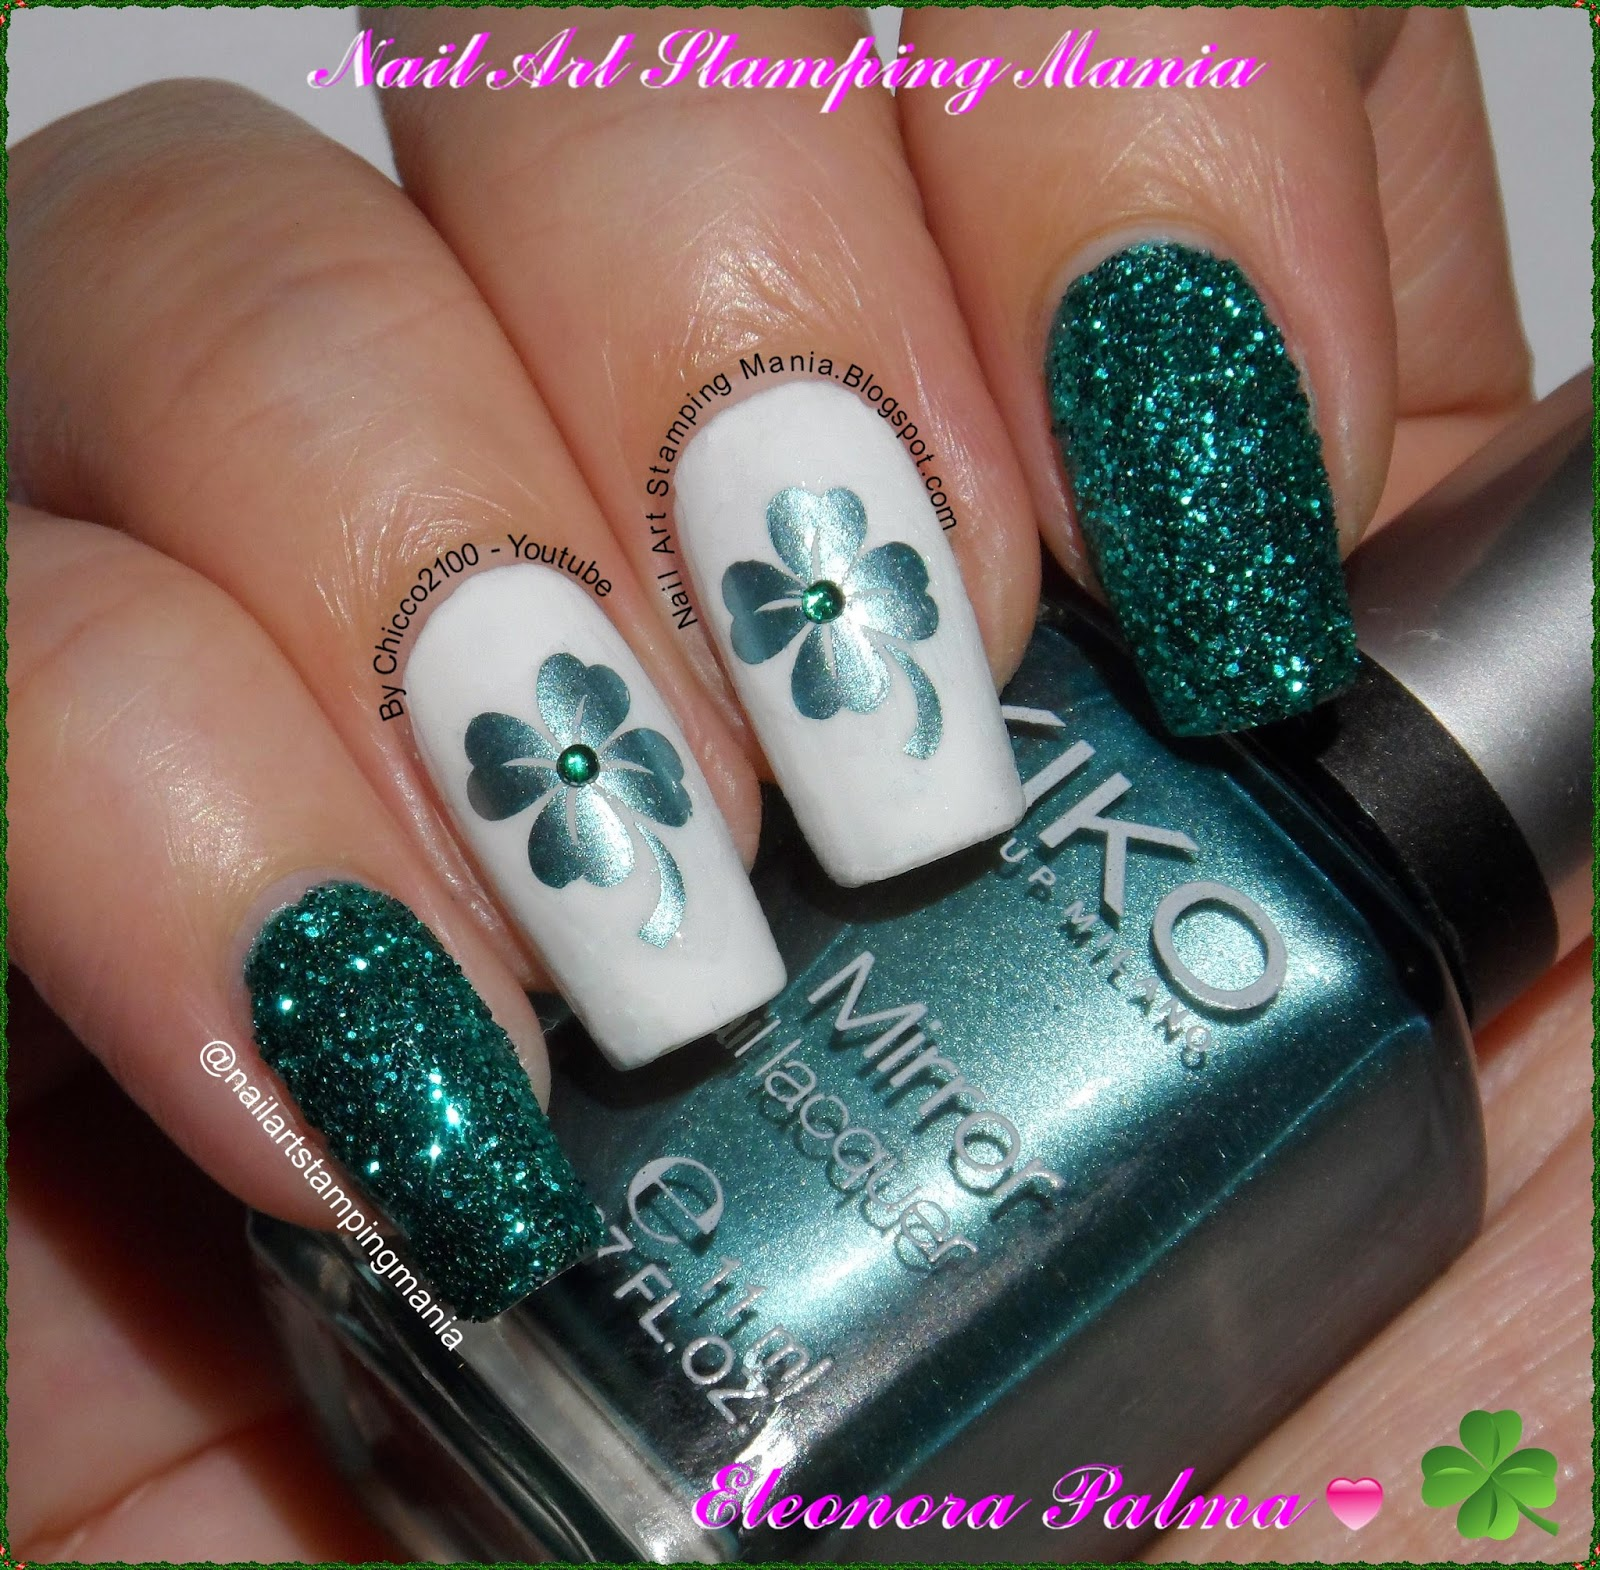 Nail Art Stamping Mania: St Patric\'s Day Manicure With UberChic ...